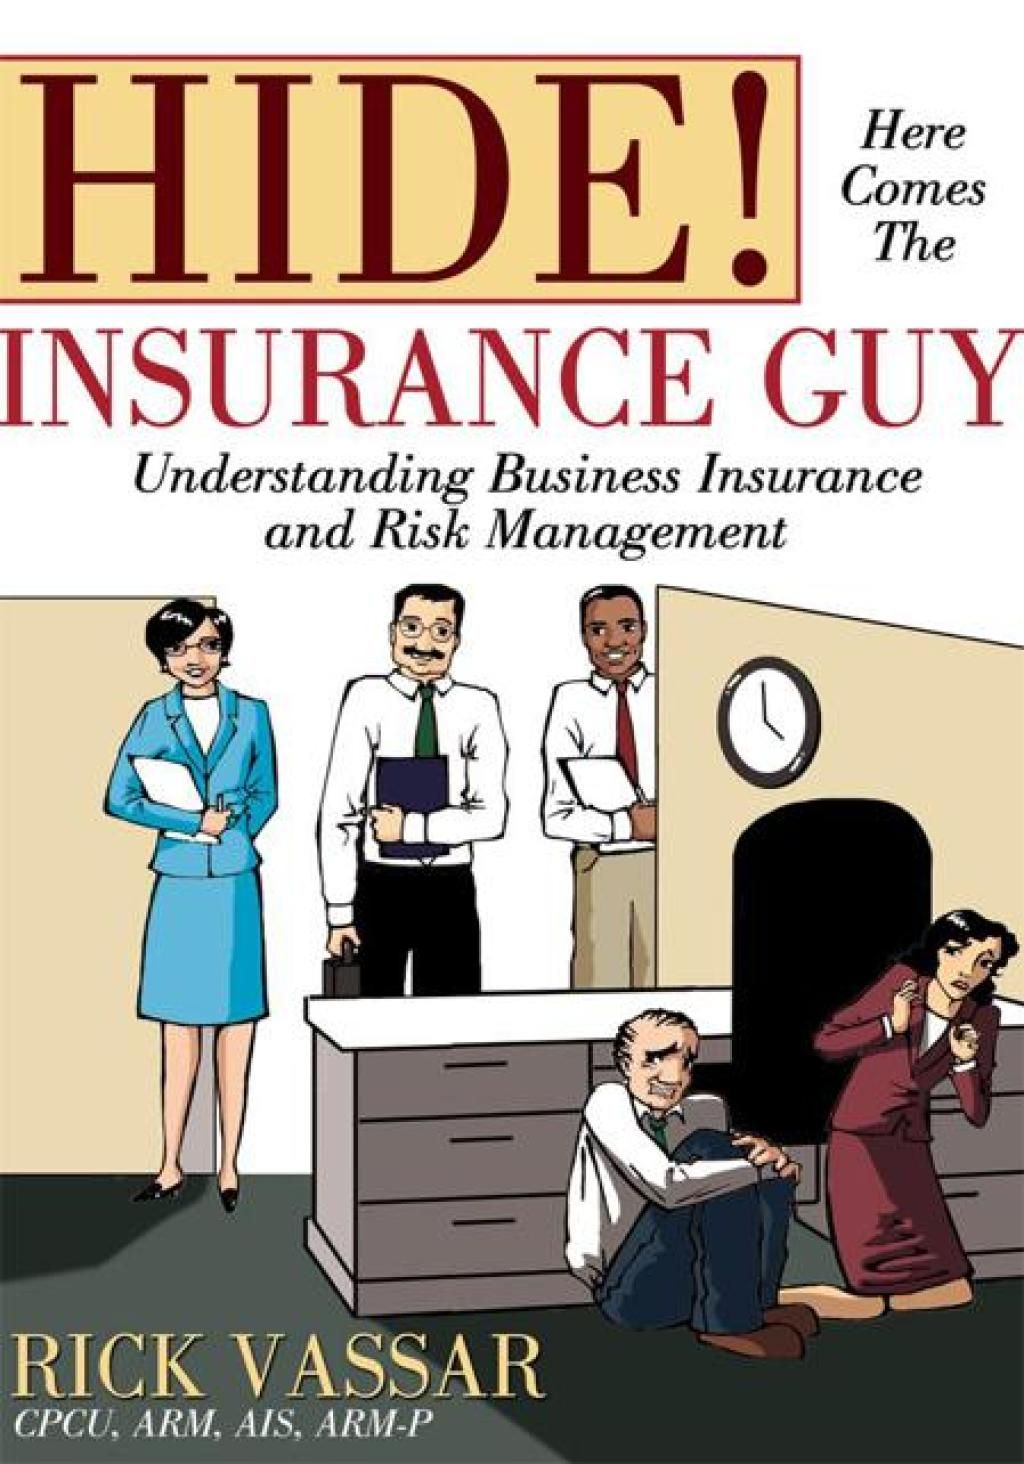 Hide! Here Comes the Insurance Guy (eBook) Business